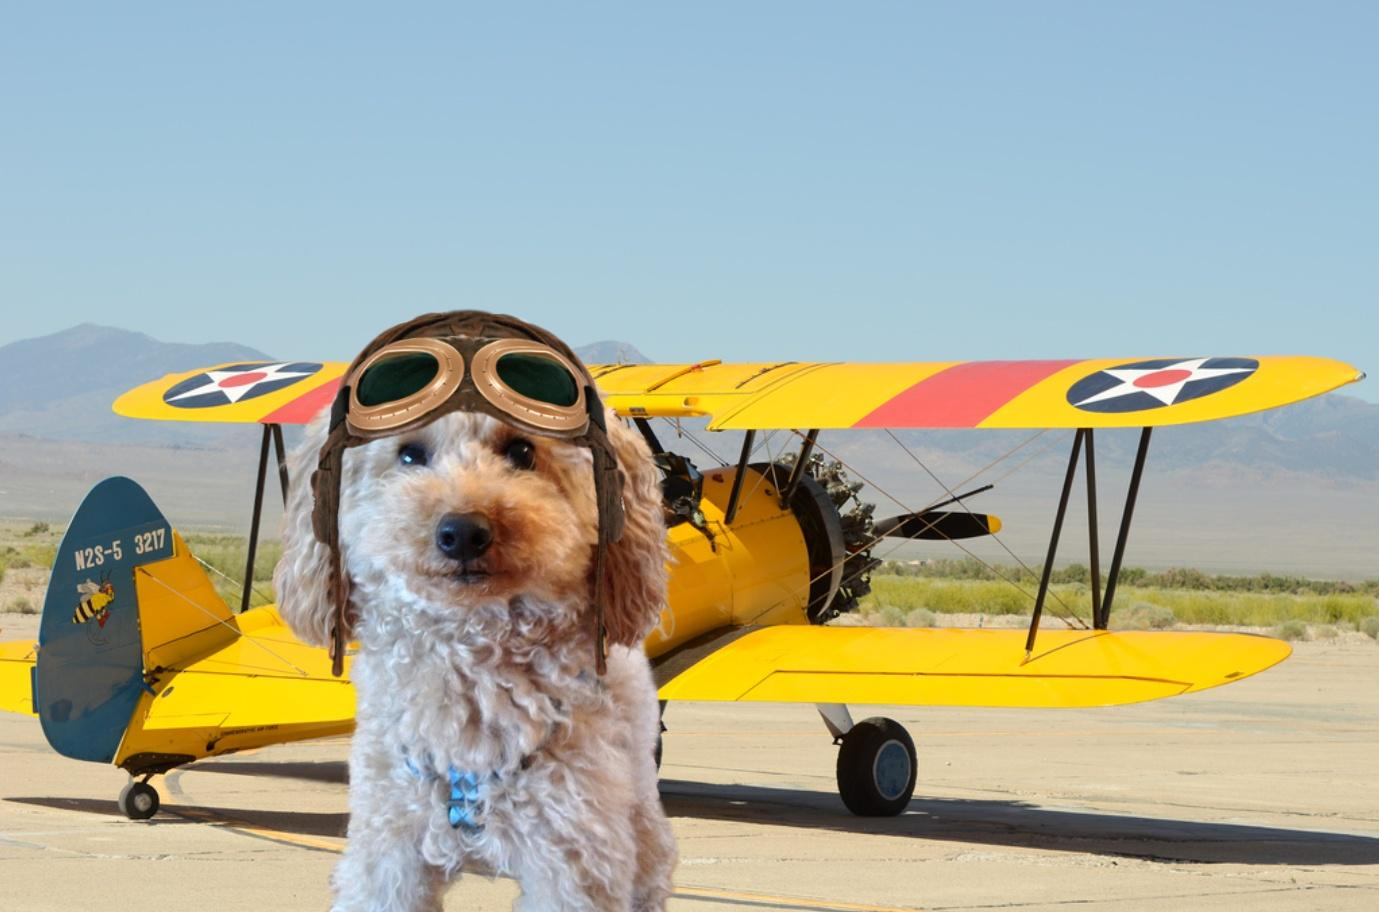 MT @ToddyFur: Oh dear... my thoughts are with Otis and his family @FreshOtis @MickeyShortTail  #TheAviators http://t.co/TJHy6kXR1E